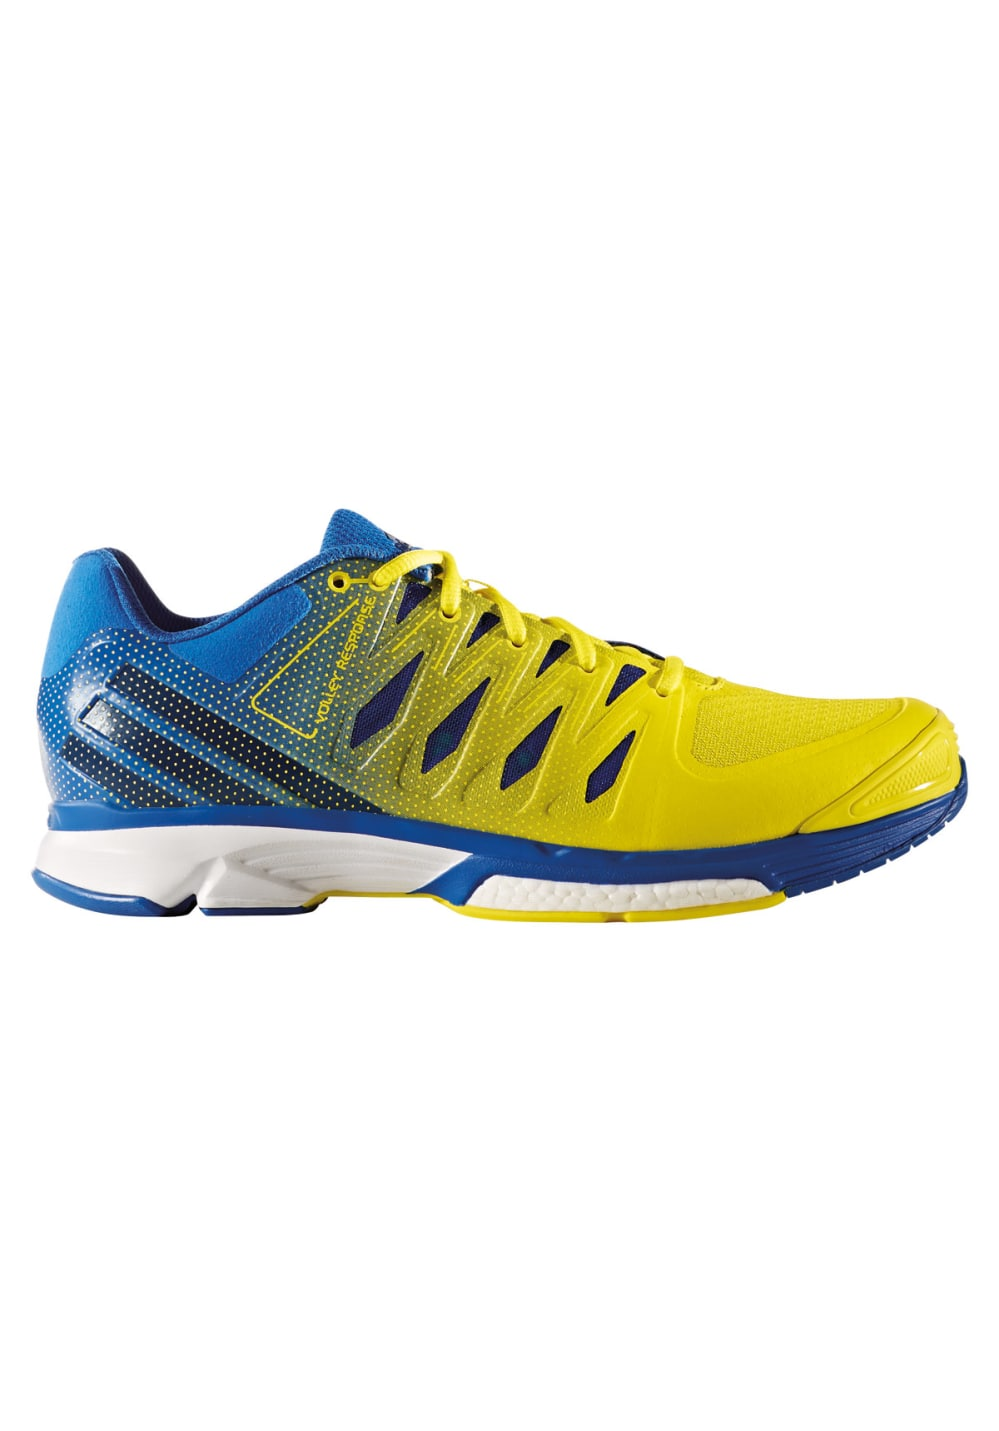 2 Boost Homme Volley Chaussures Pour Adidas Volleyball De Response qUEwnpx6H